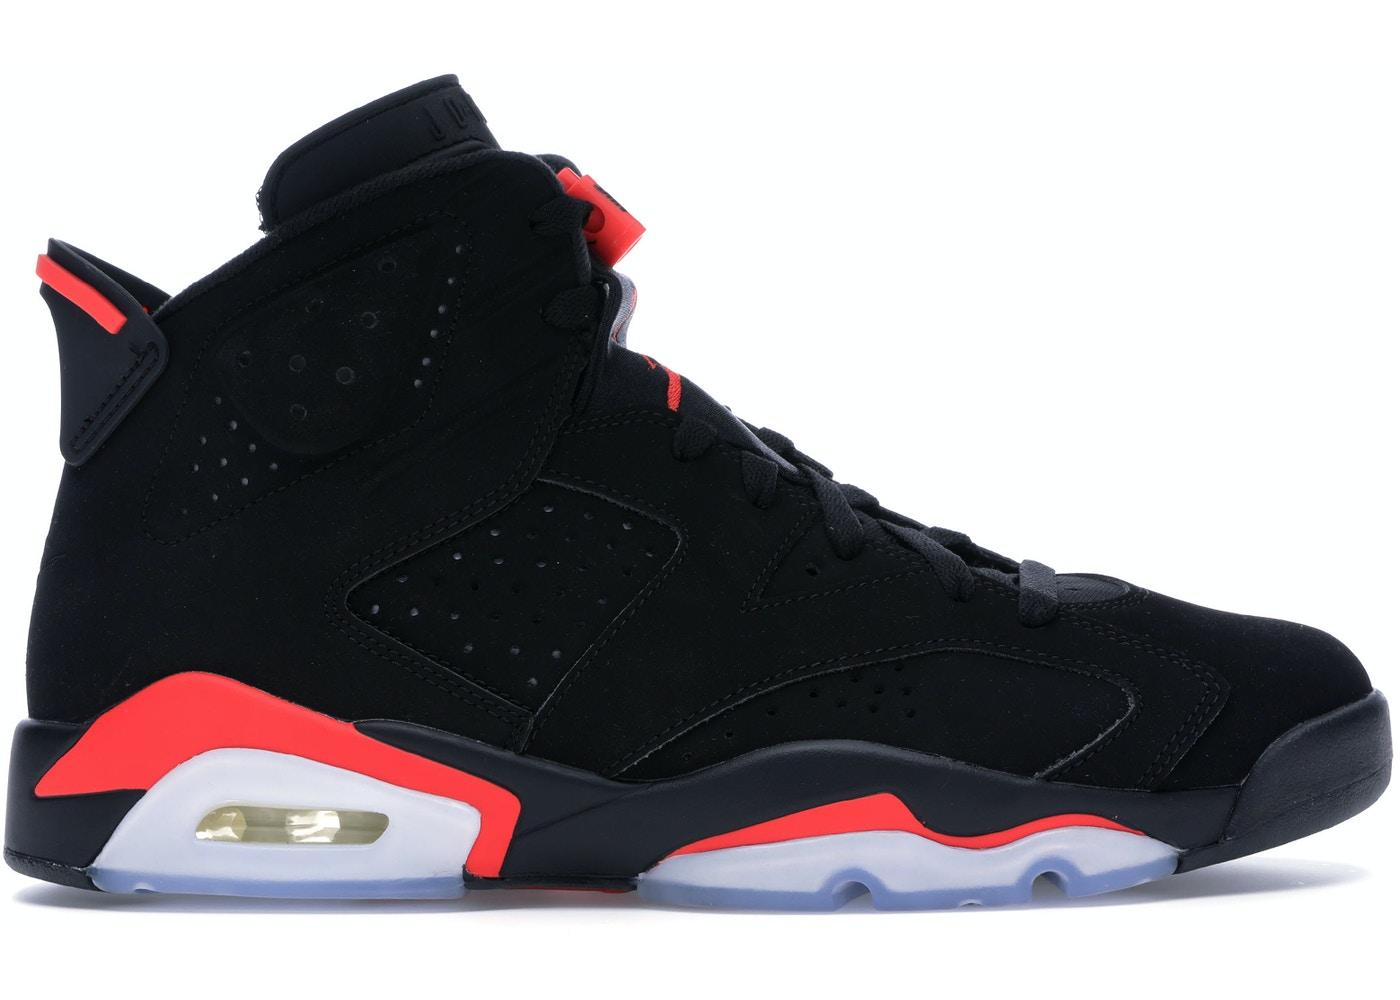 096ac26a8434d Jordan 6 Retro Black Infrared (2019) - 384664-060